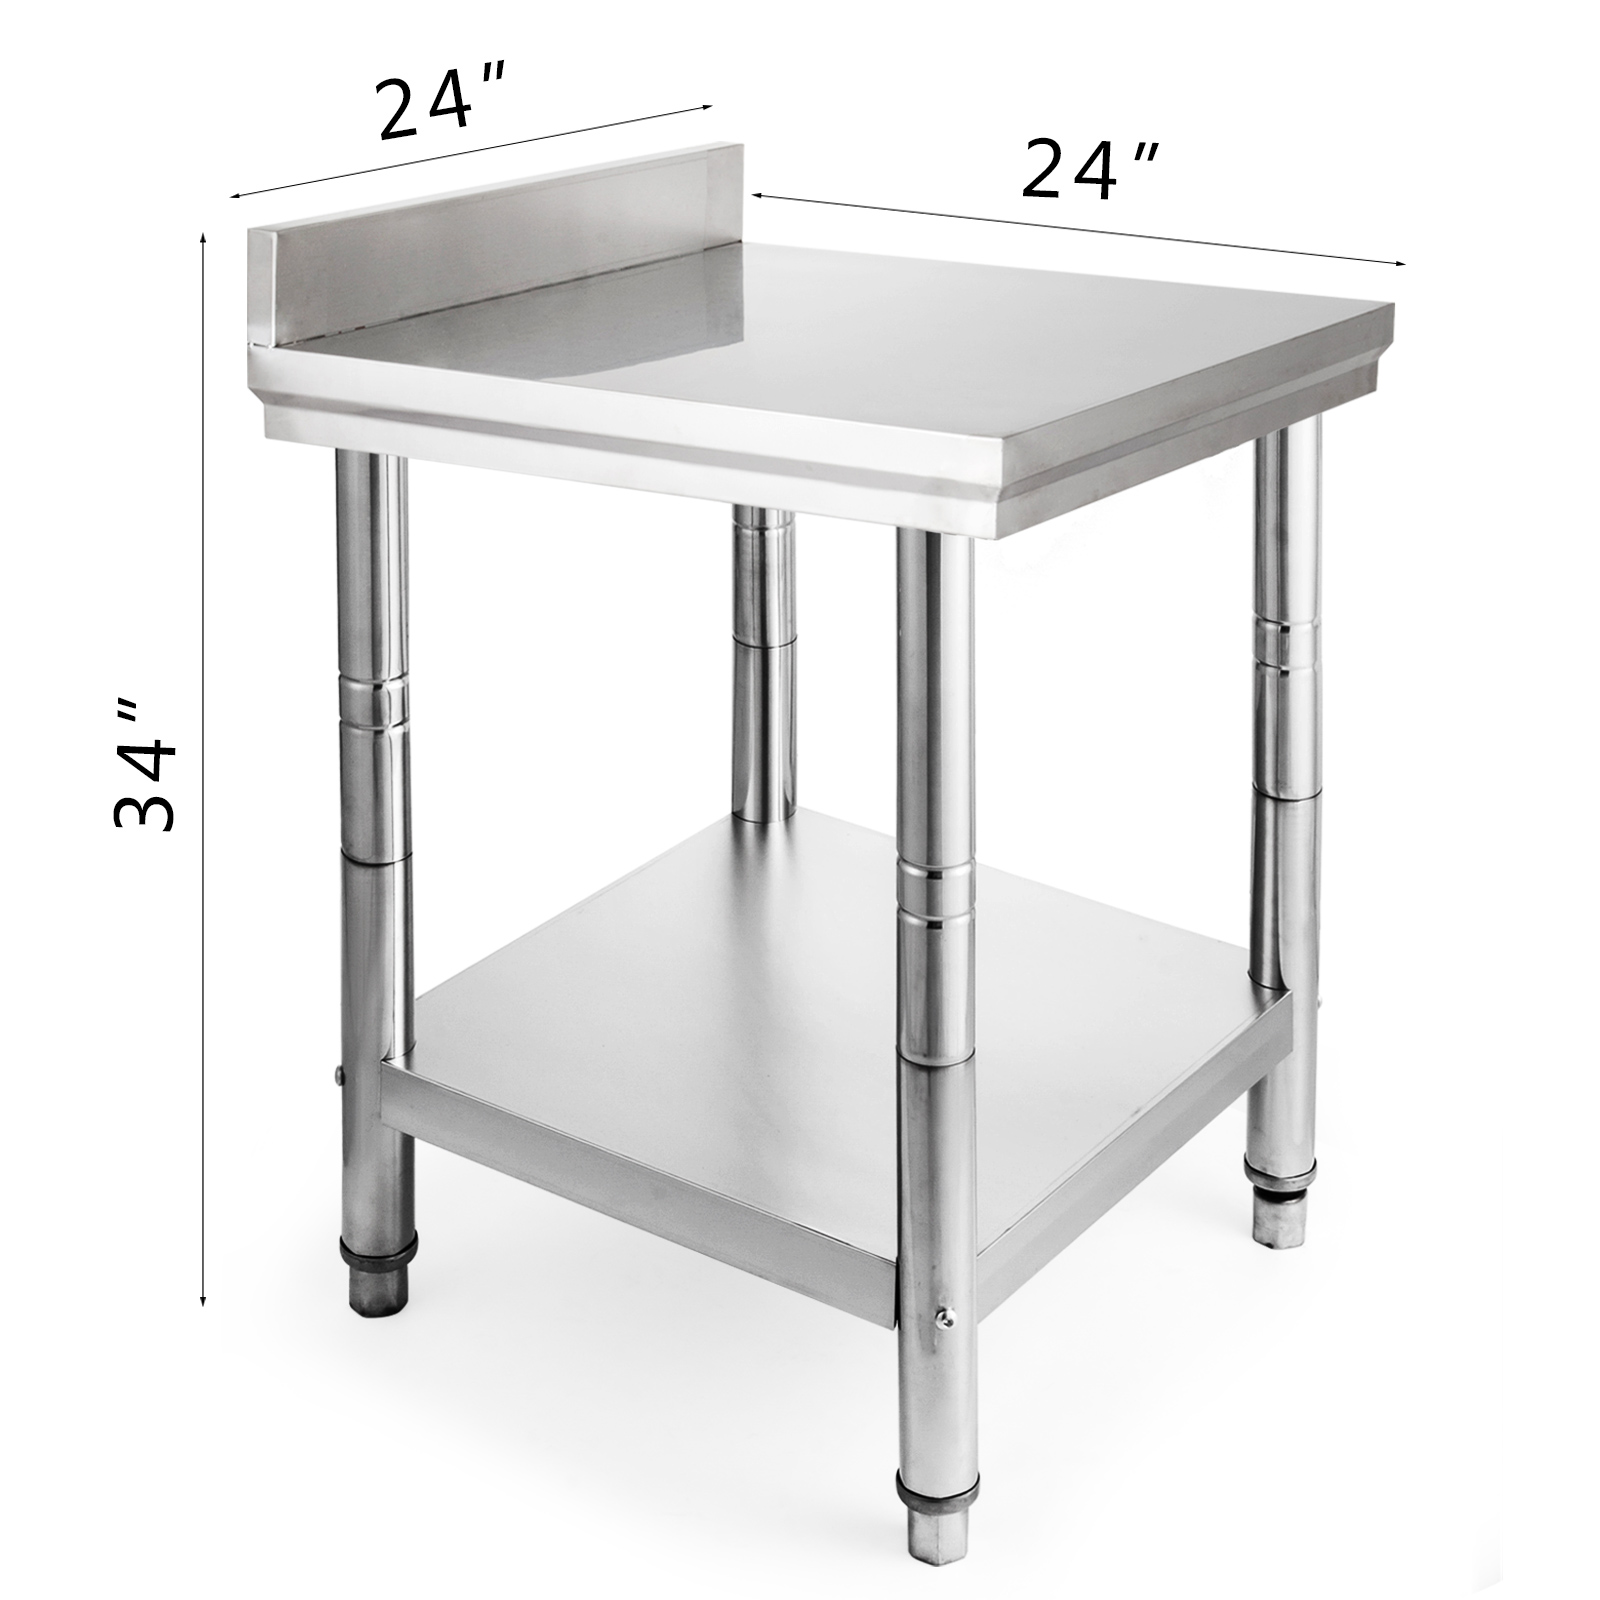 Stainless Steel Commercial Catering Table Work Bench